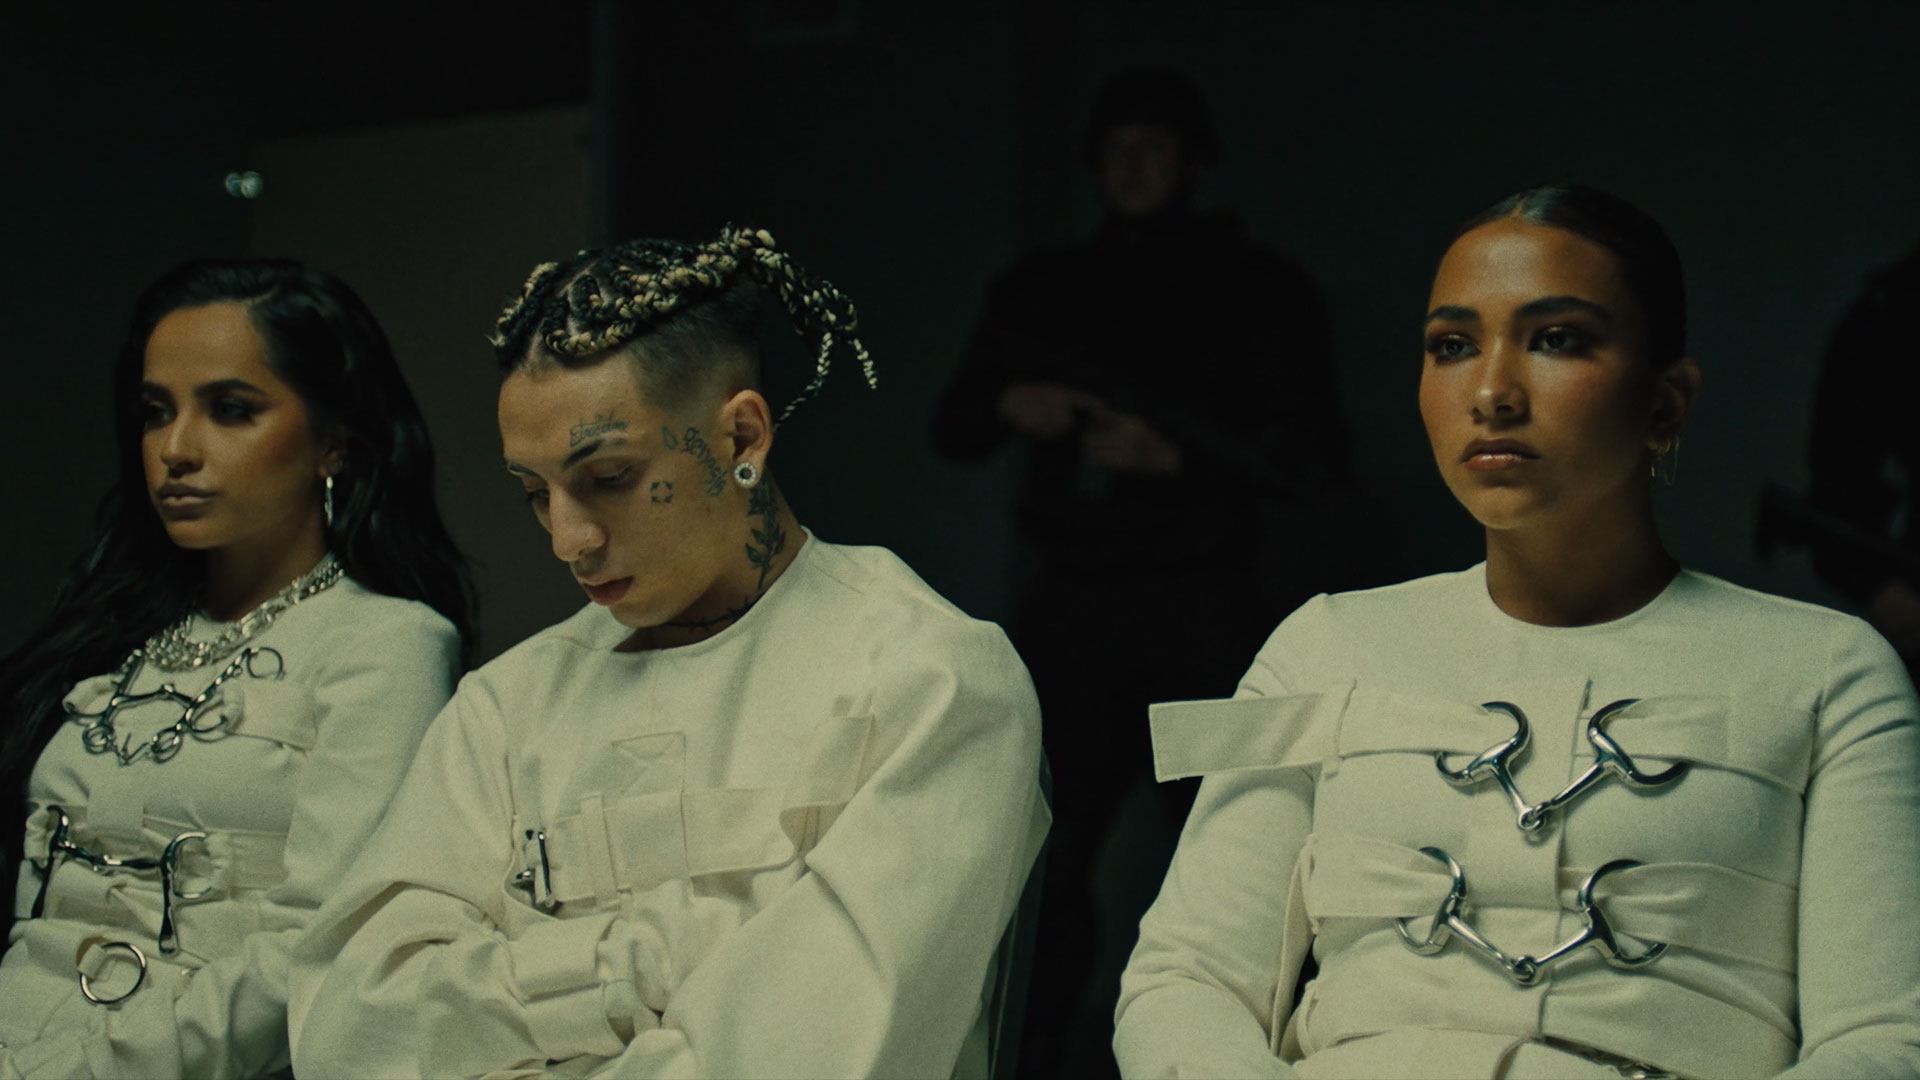 3 individuals in white sitting in an interrogation room.